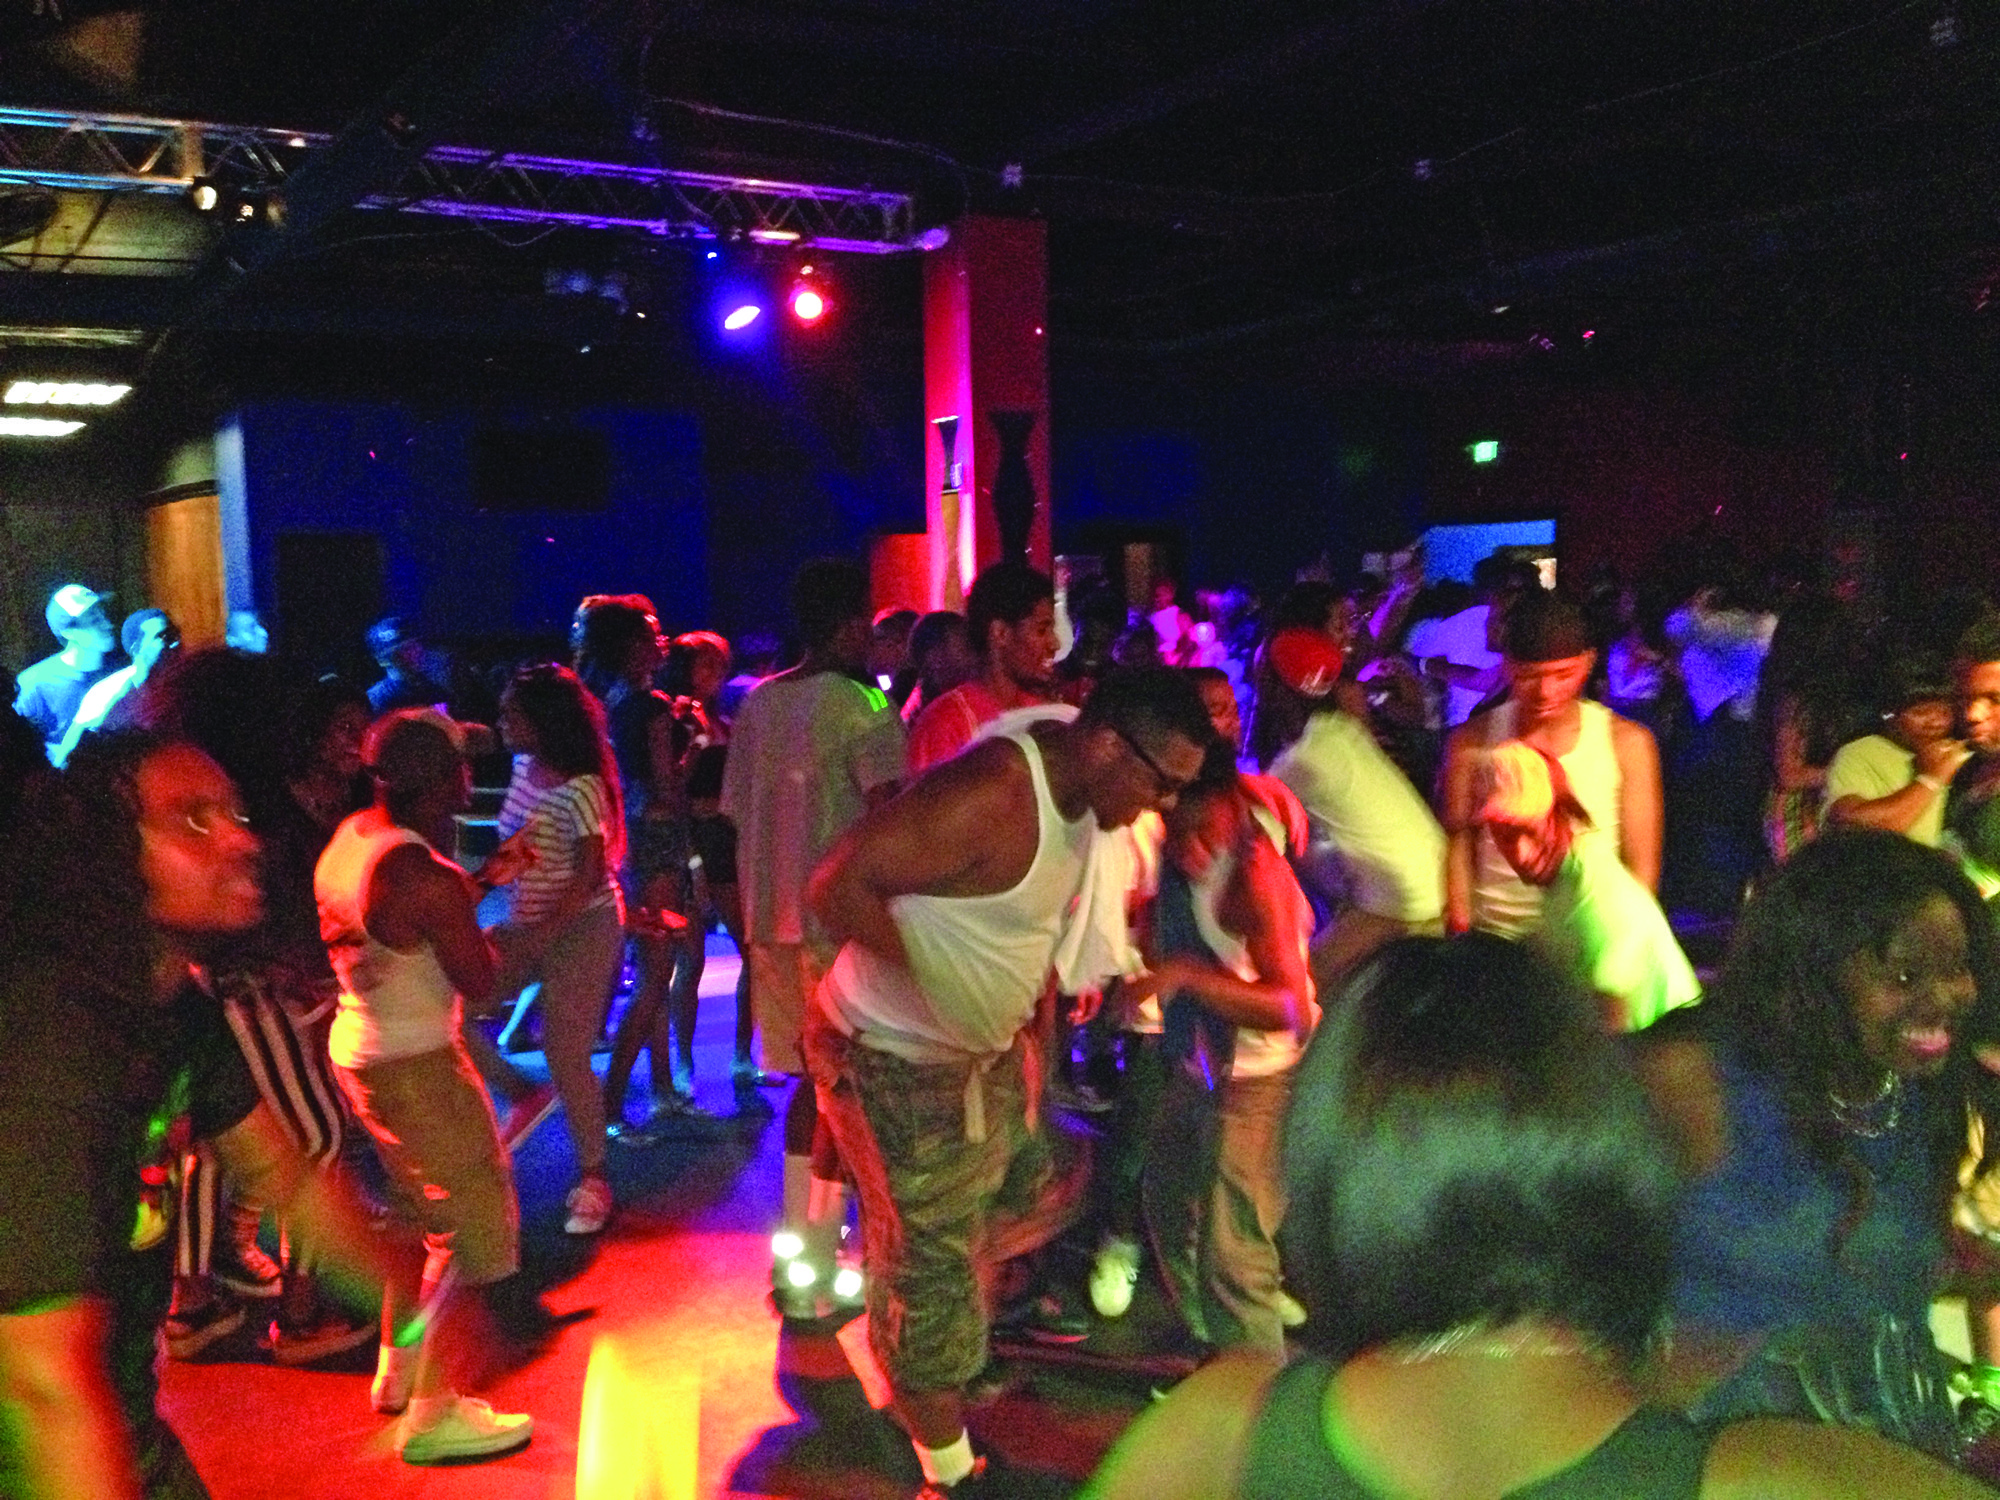 The infectious energy at Paparazzi Nightclub was the only bright spot on a recent Friday night.